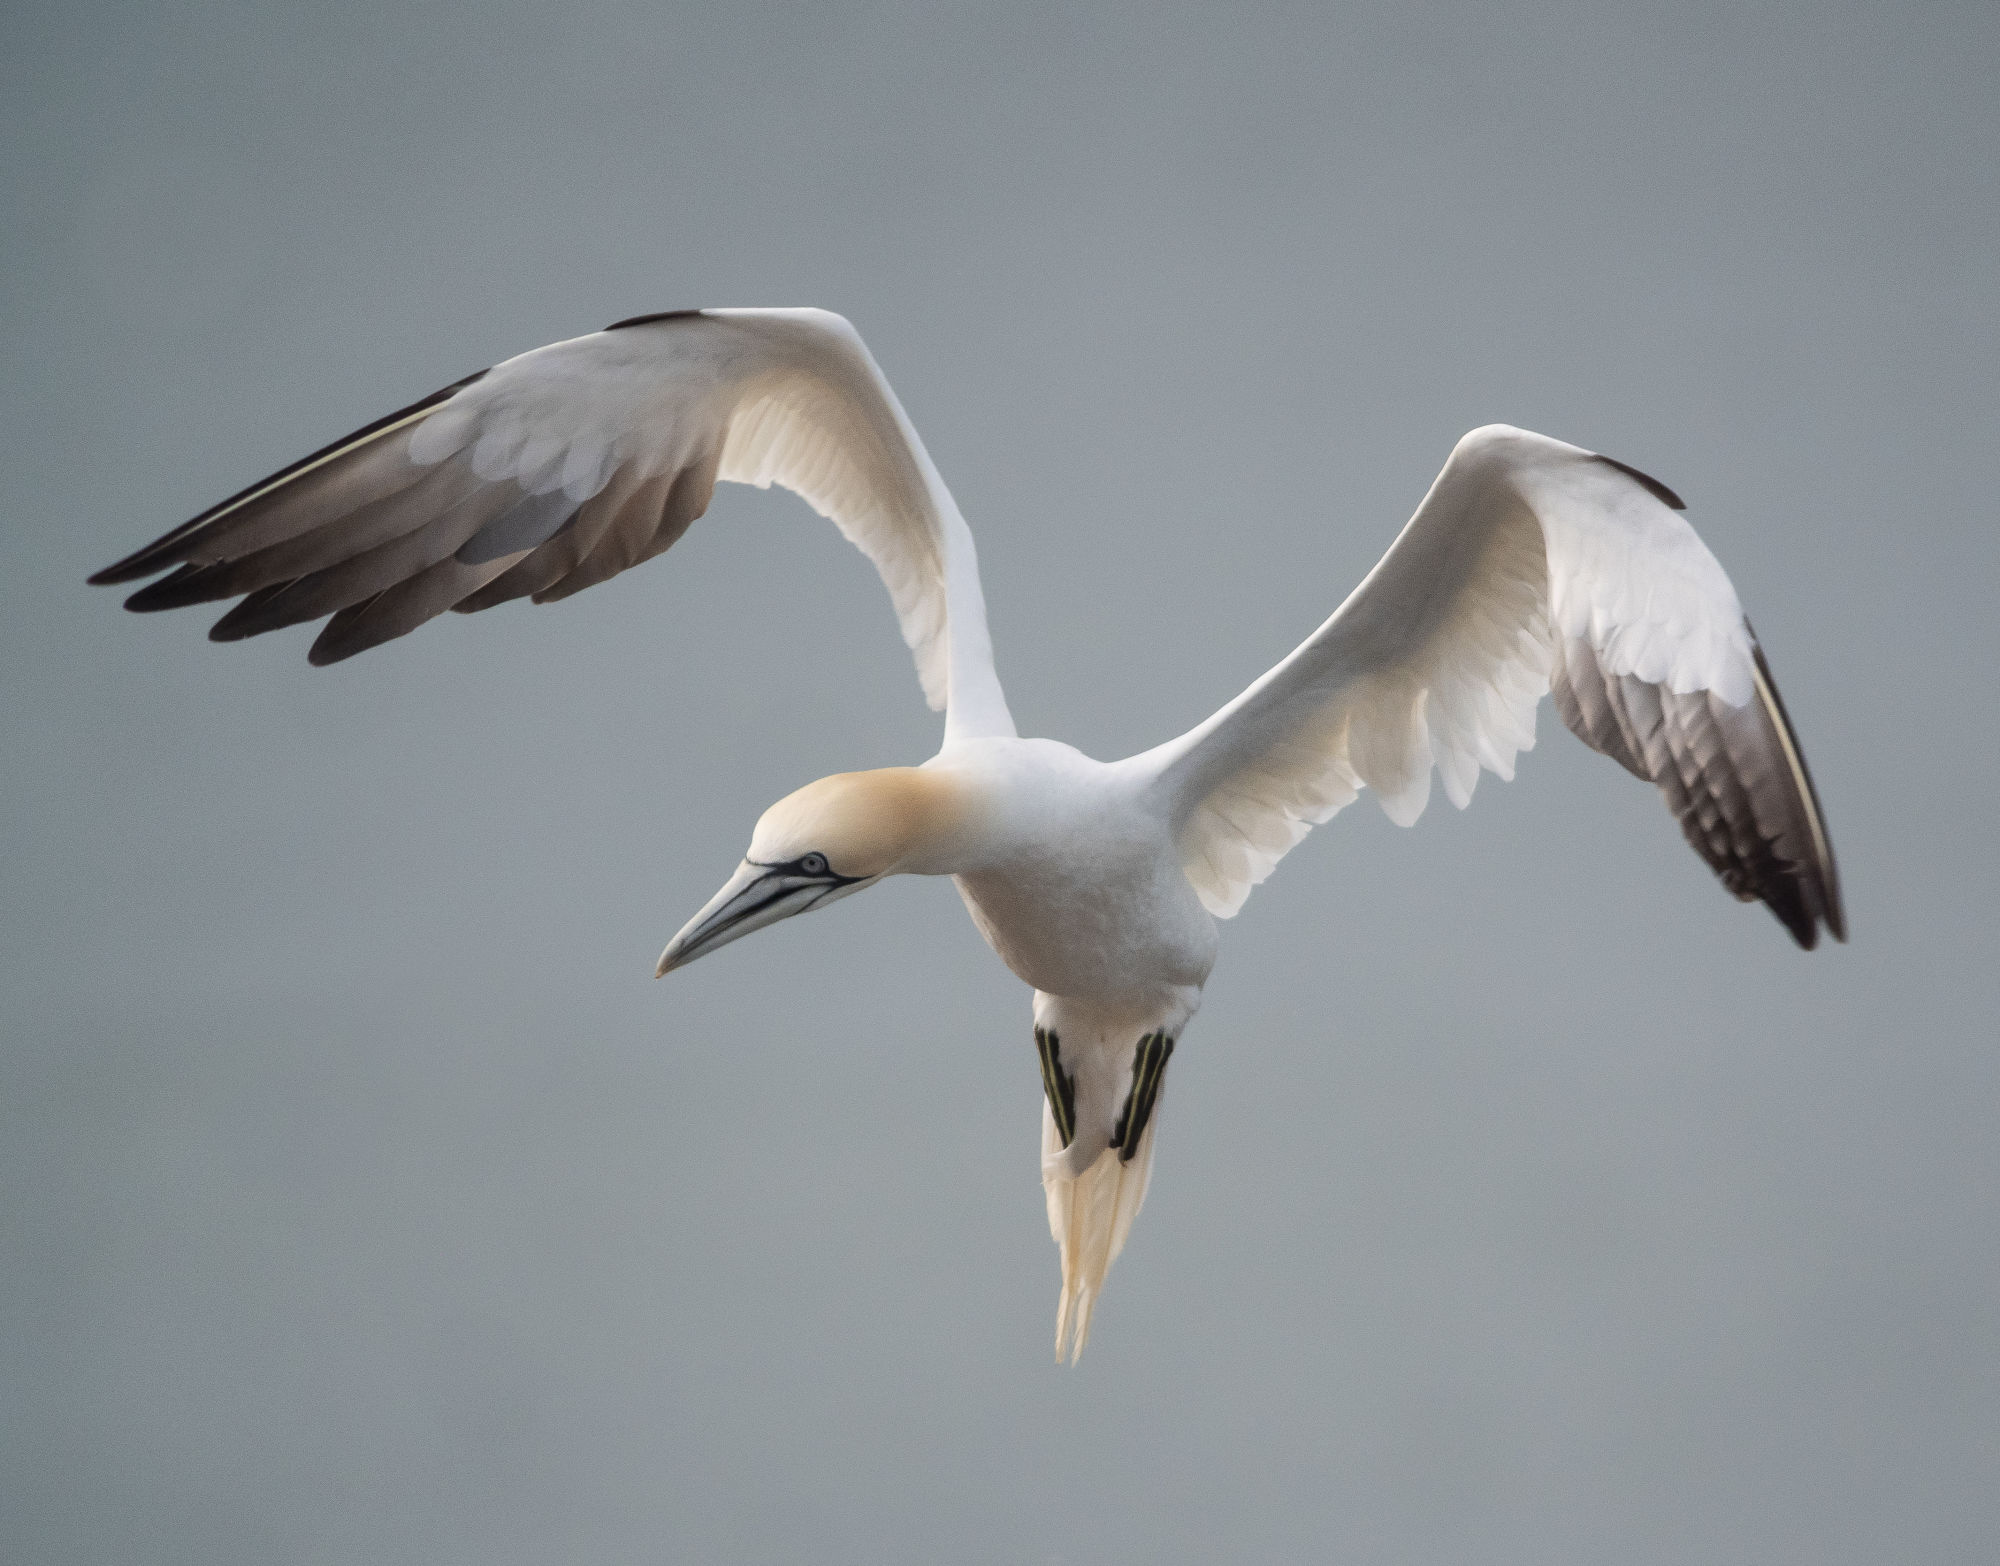 A Black-browed Albatross at RSPB Bempton Cliffs - Gannet by Justin Carr